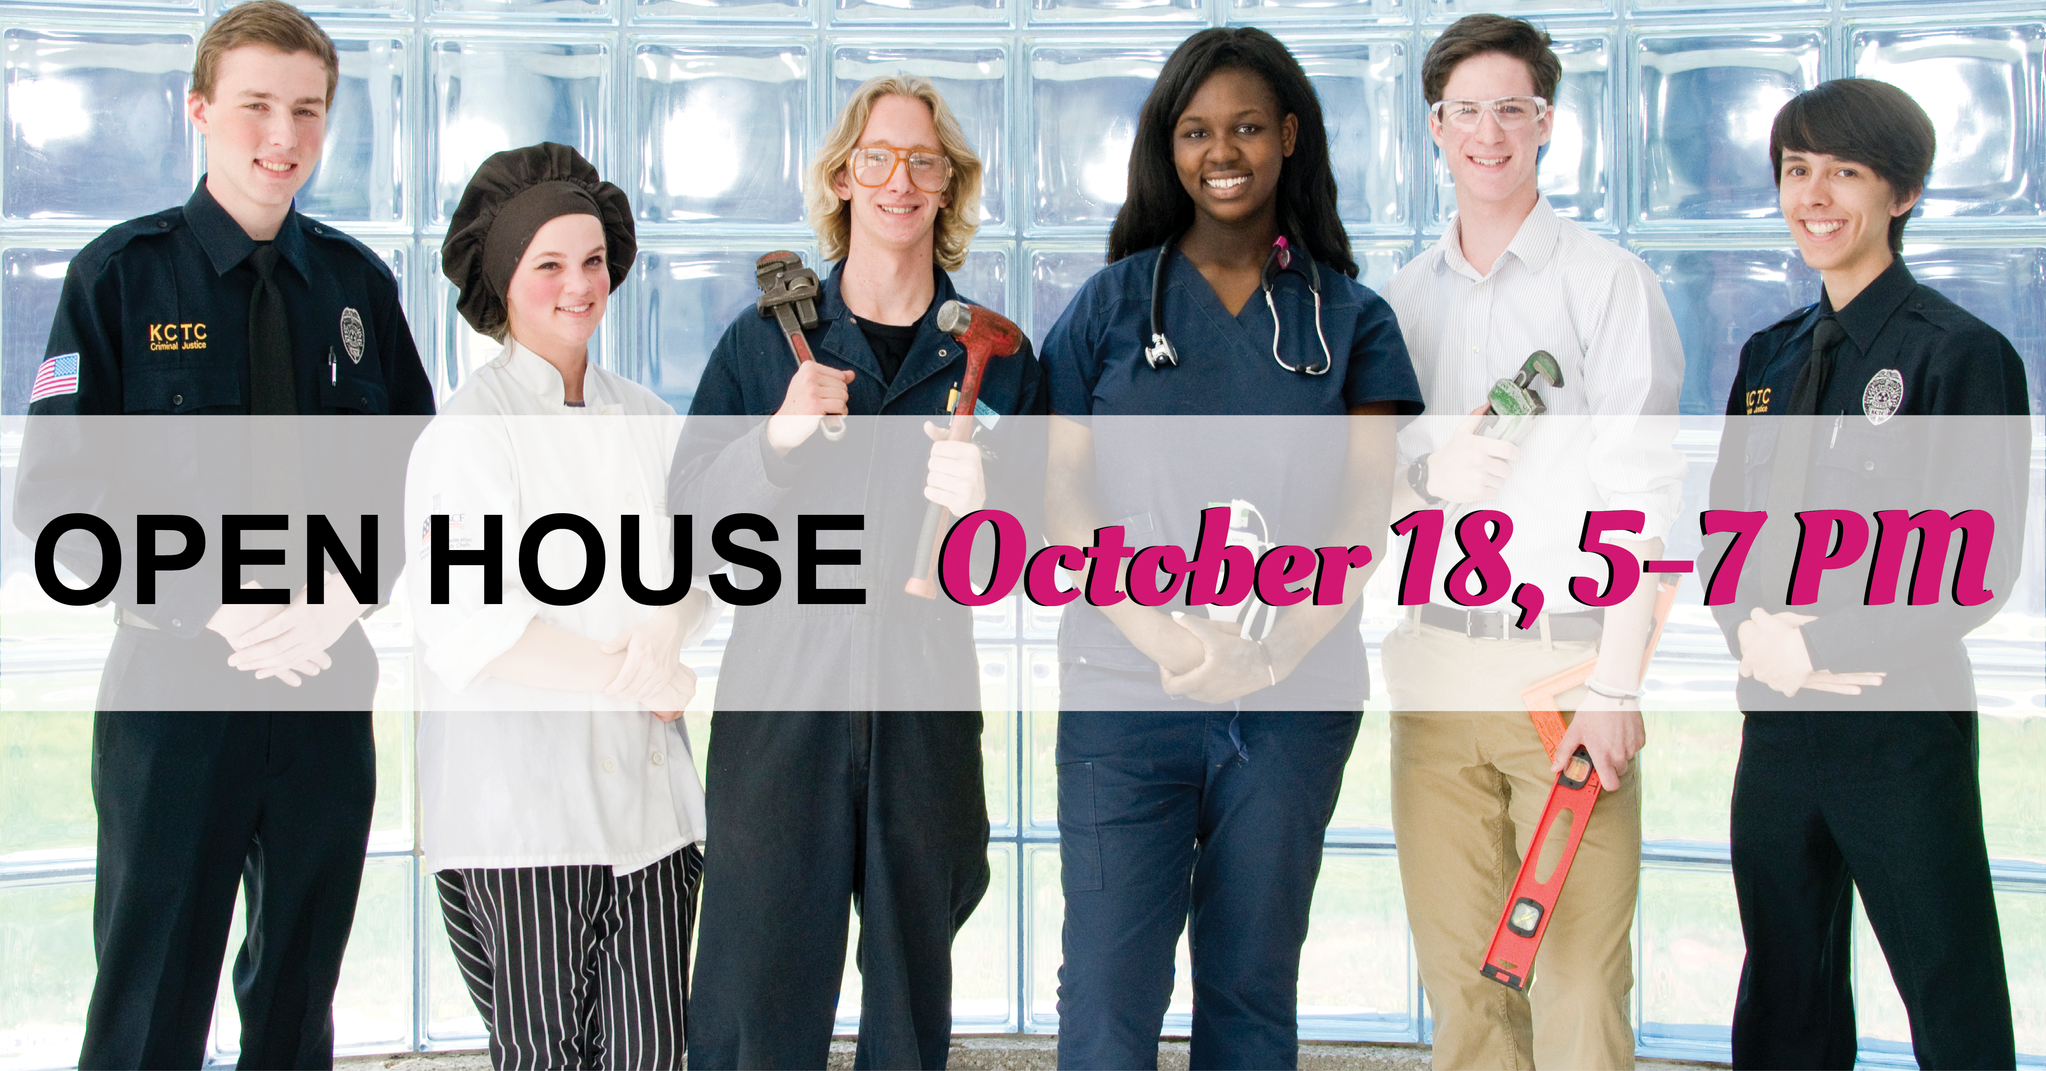 Open House - October 18, 5-7pm